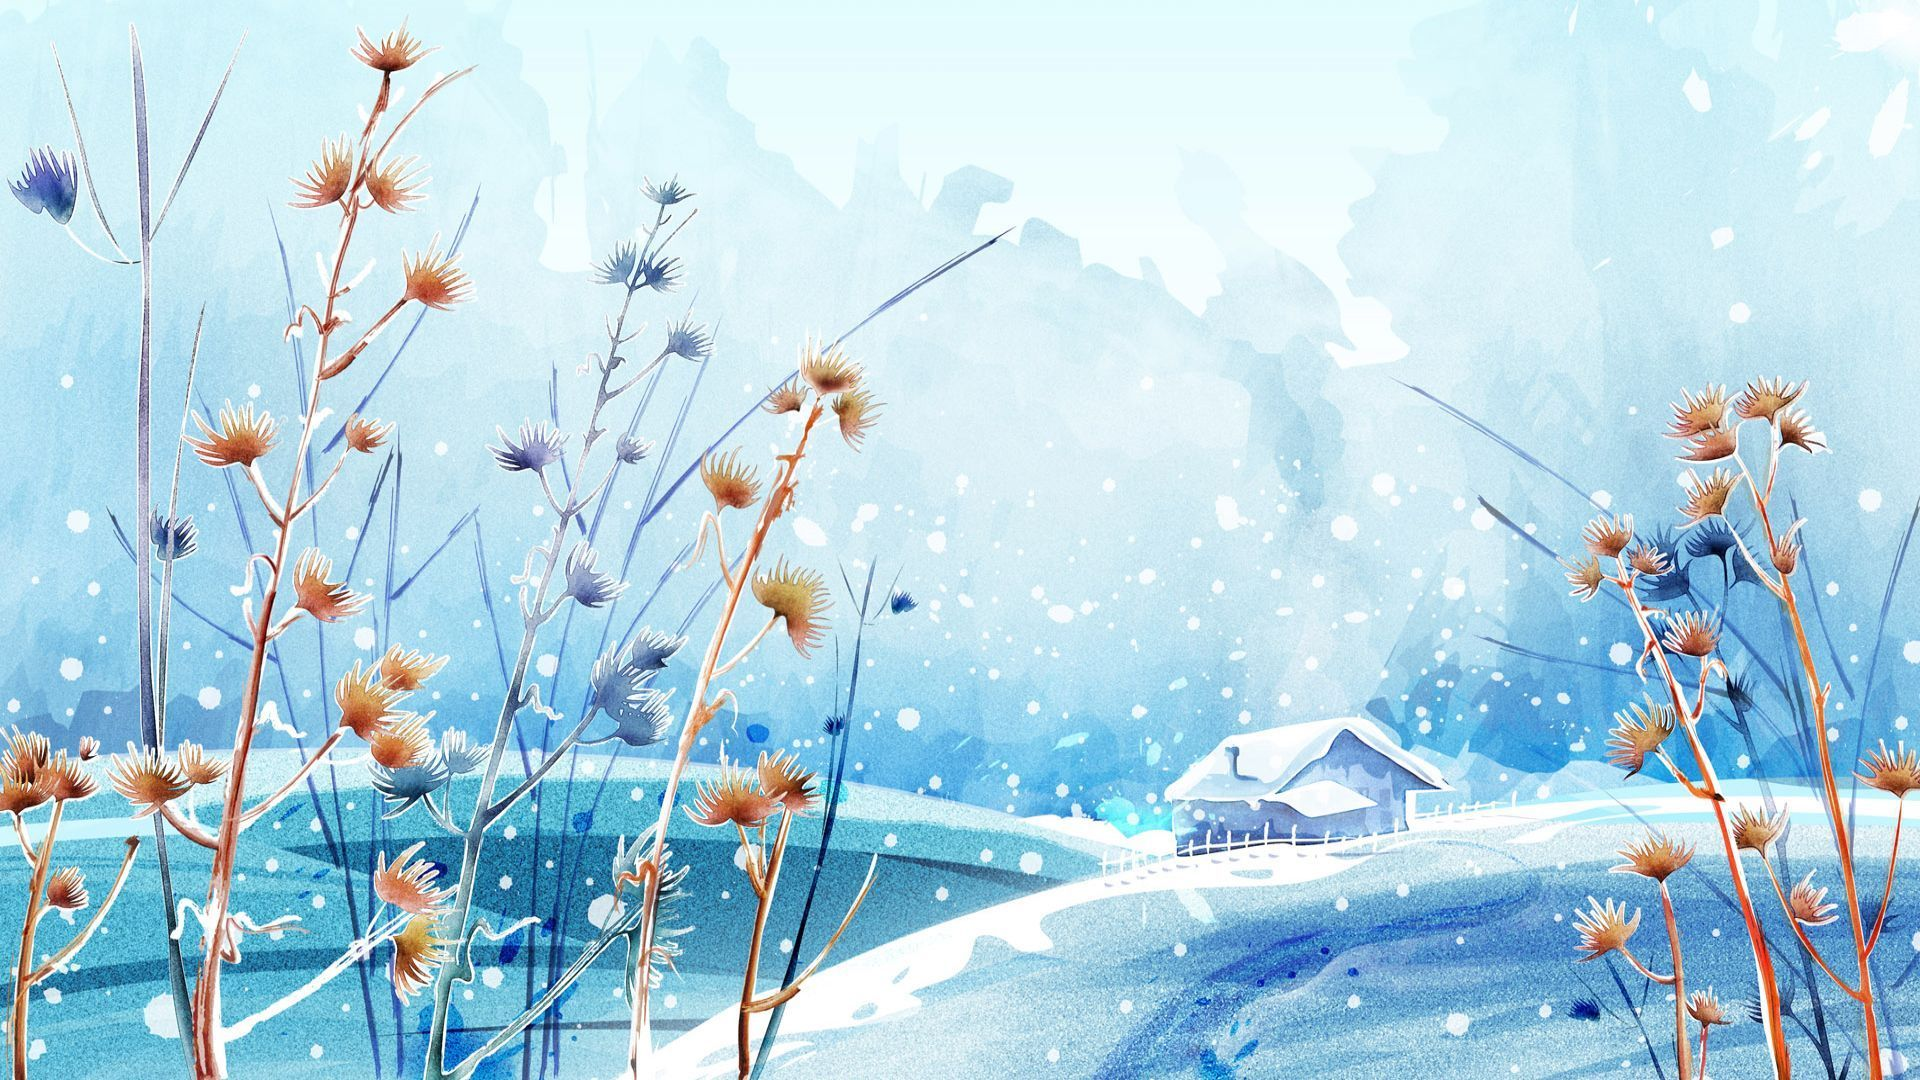 Anime Winter Scenery Wallpaper Hd Wallpapers Backgrounds Of Your Choice Winter Wallpaper Scenery Wallpaper Landscape Wallpaper